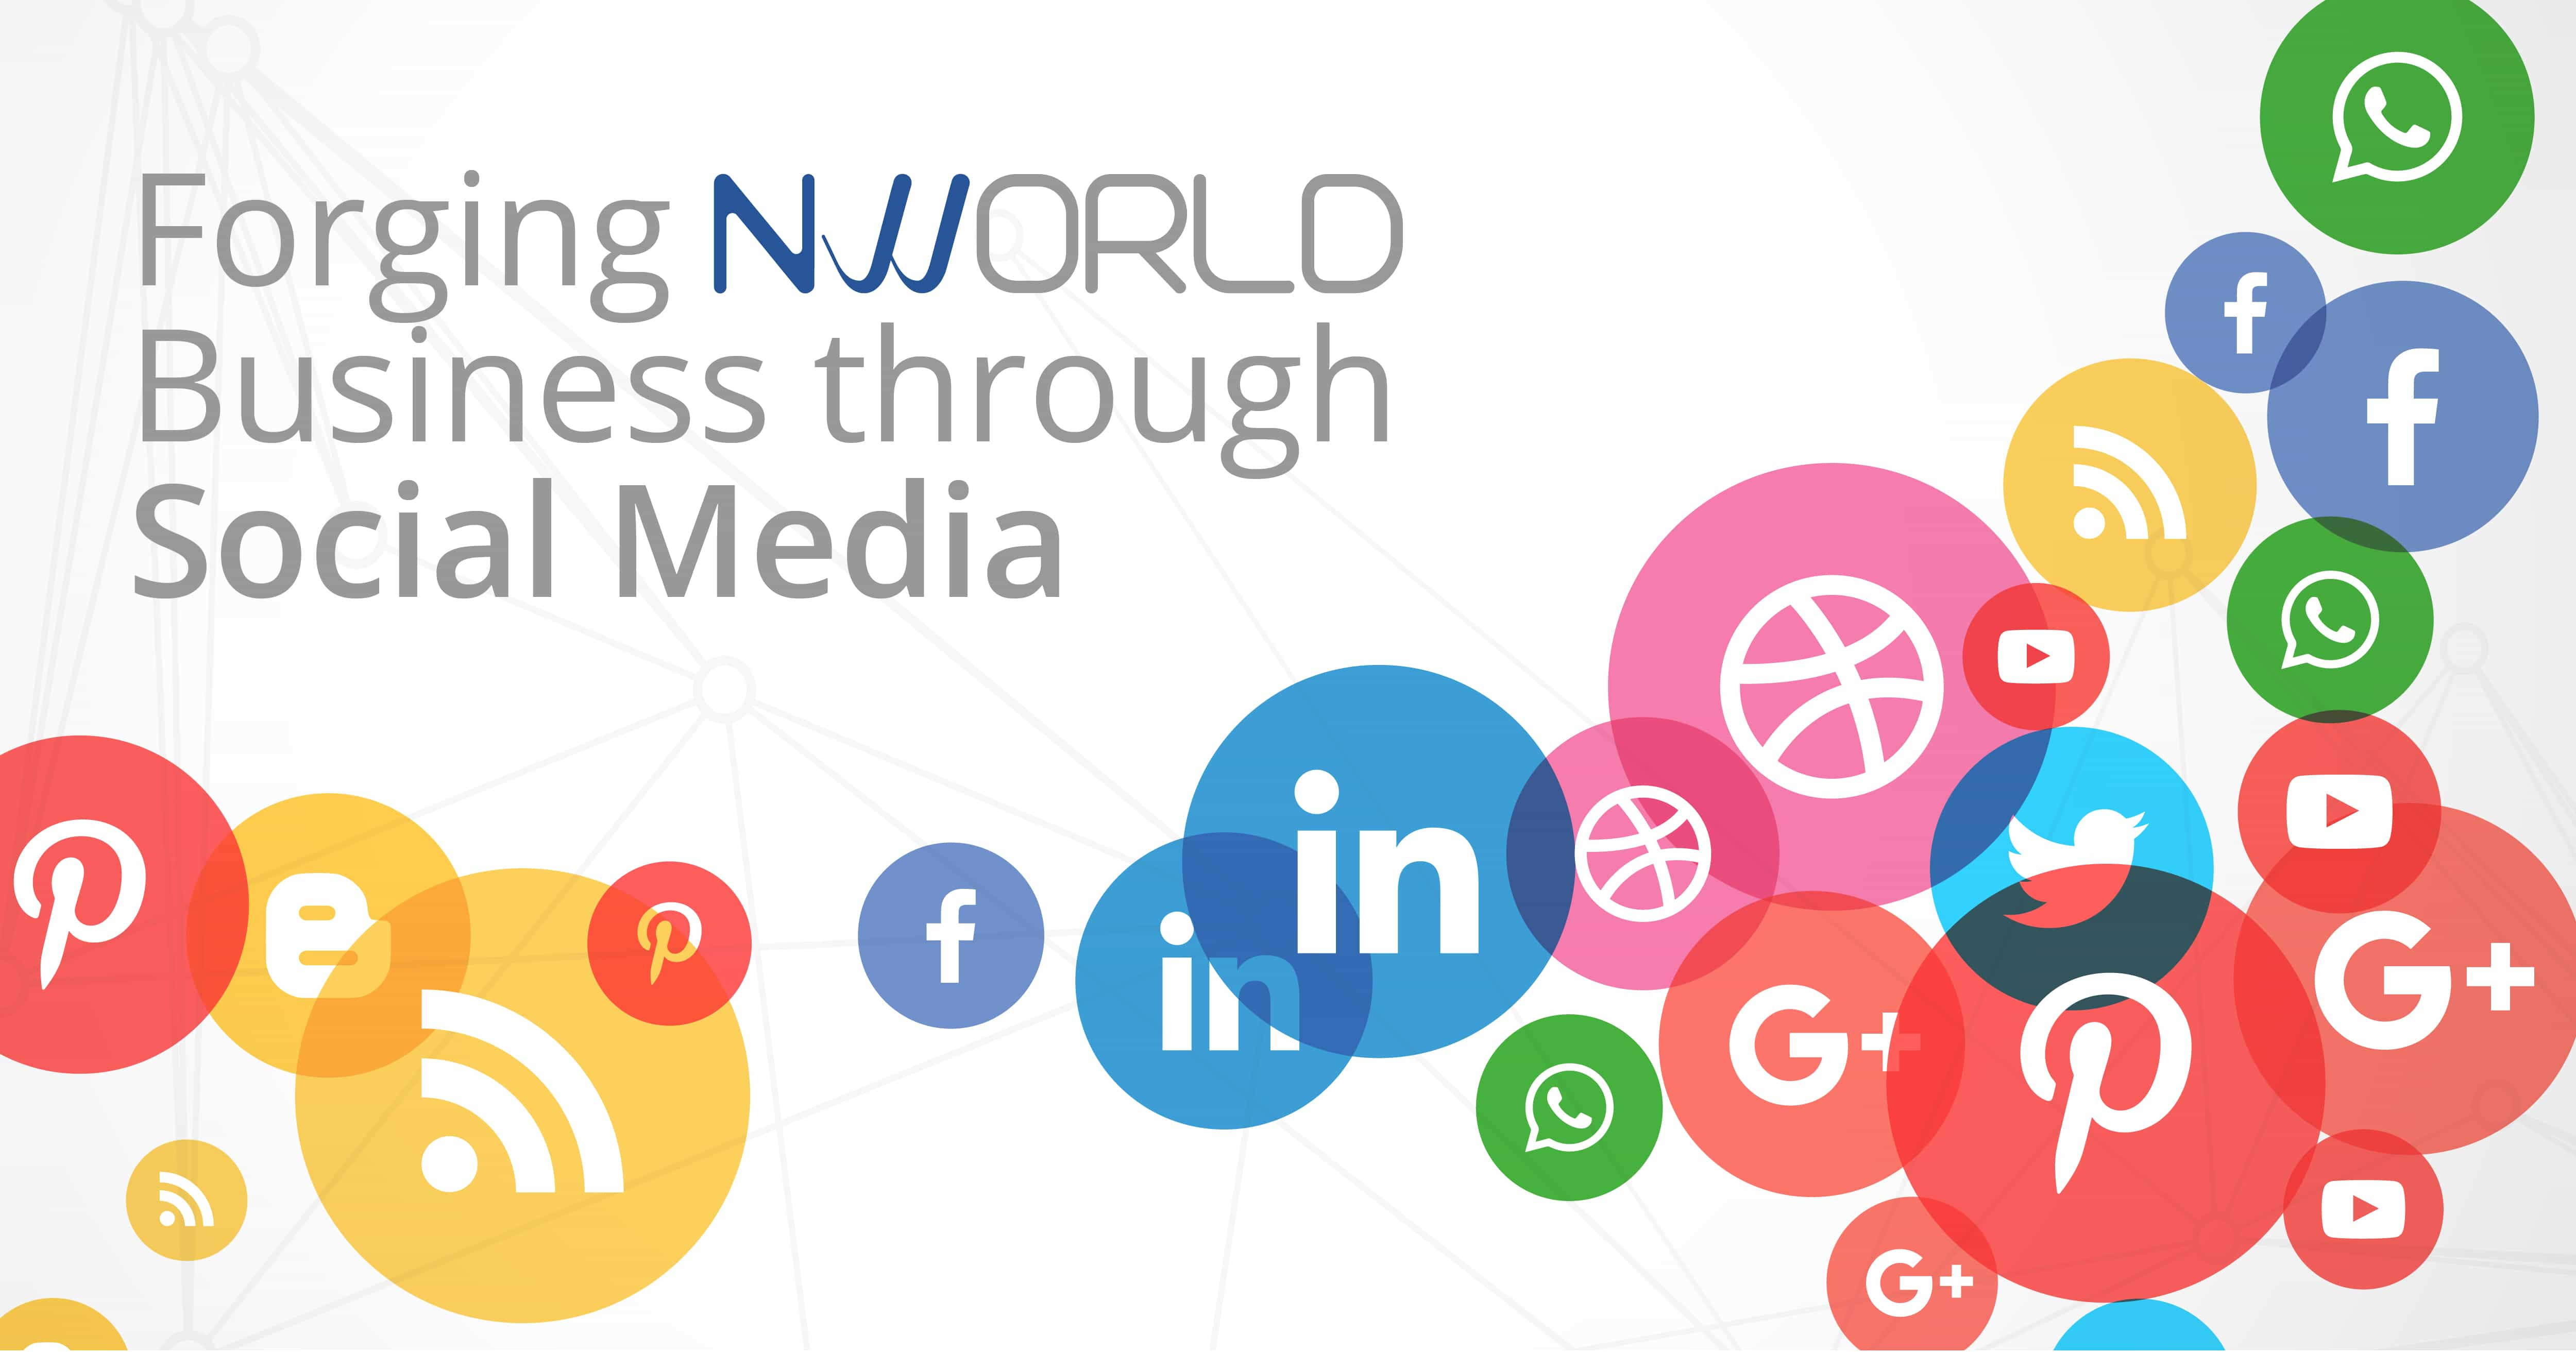 FORGING NWORLD BUSINESS THROUGH SOCIAL MEDIA